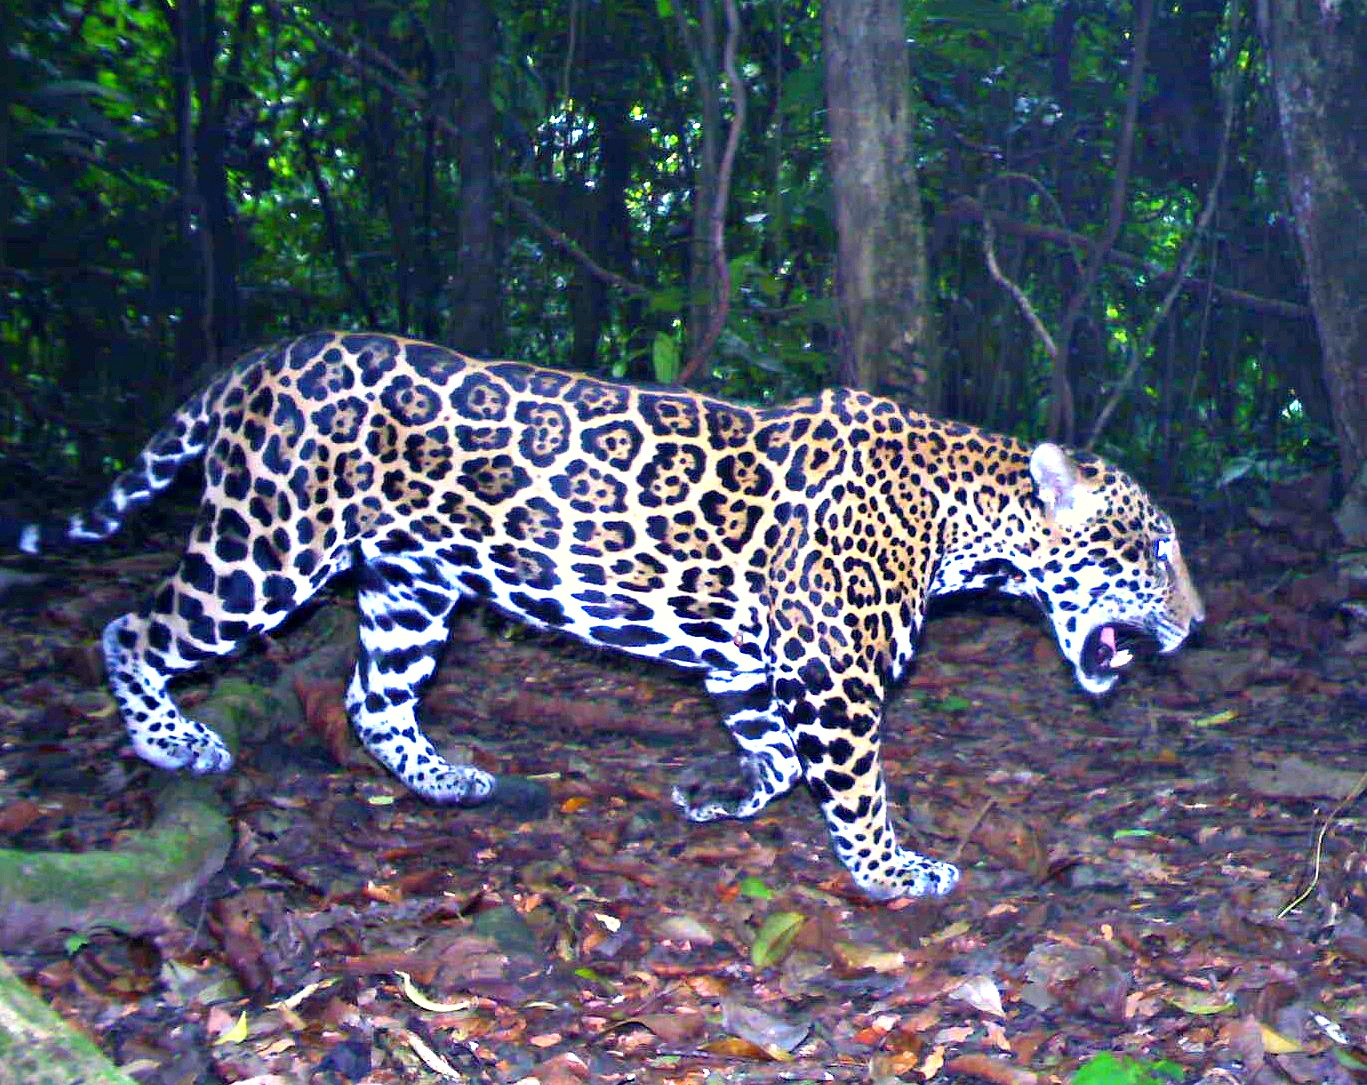 Jaguar scat study suggests restricted movement in areas of conservation importance in Mesoamerica